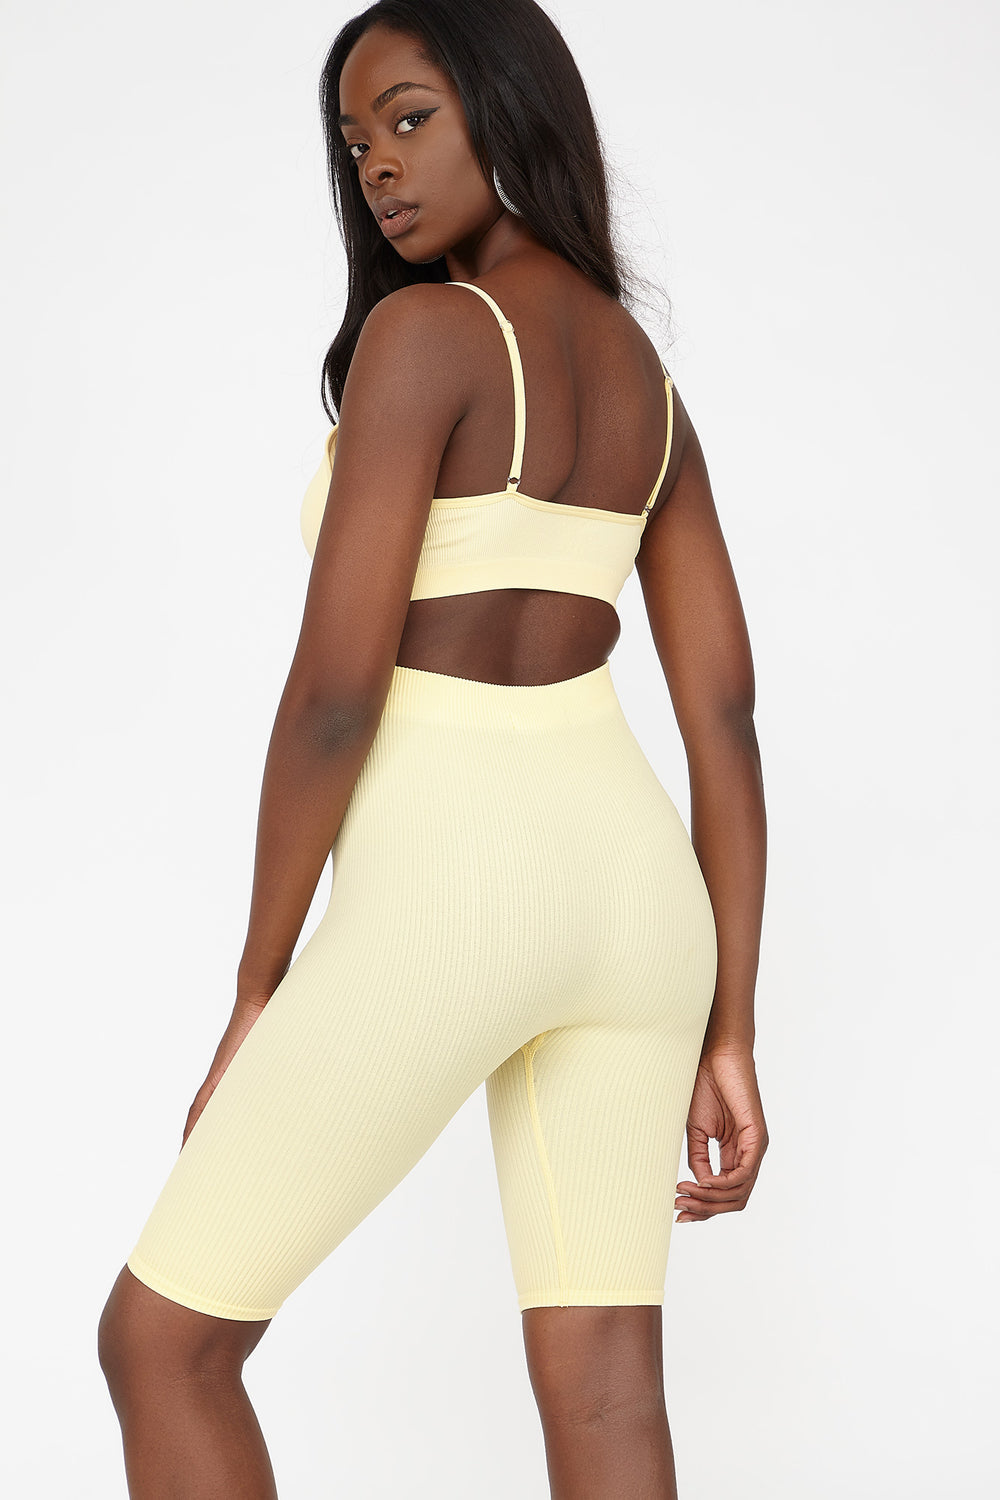 High-Rise Ribbed Longline Biker Short Yellow